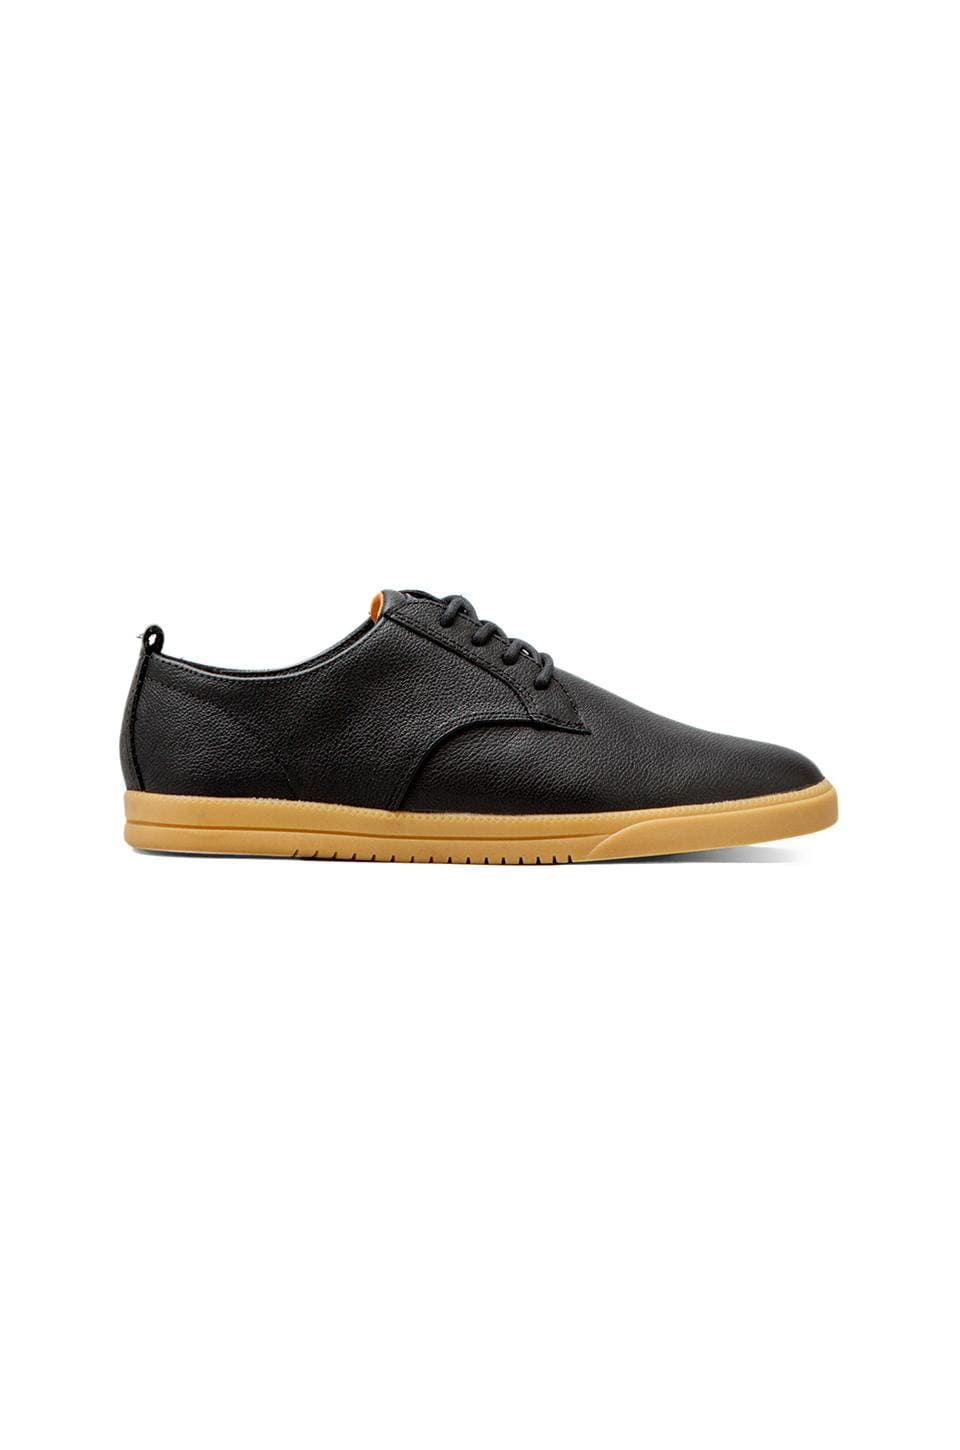 Clae Ellington in Black Tumble Leather